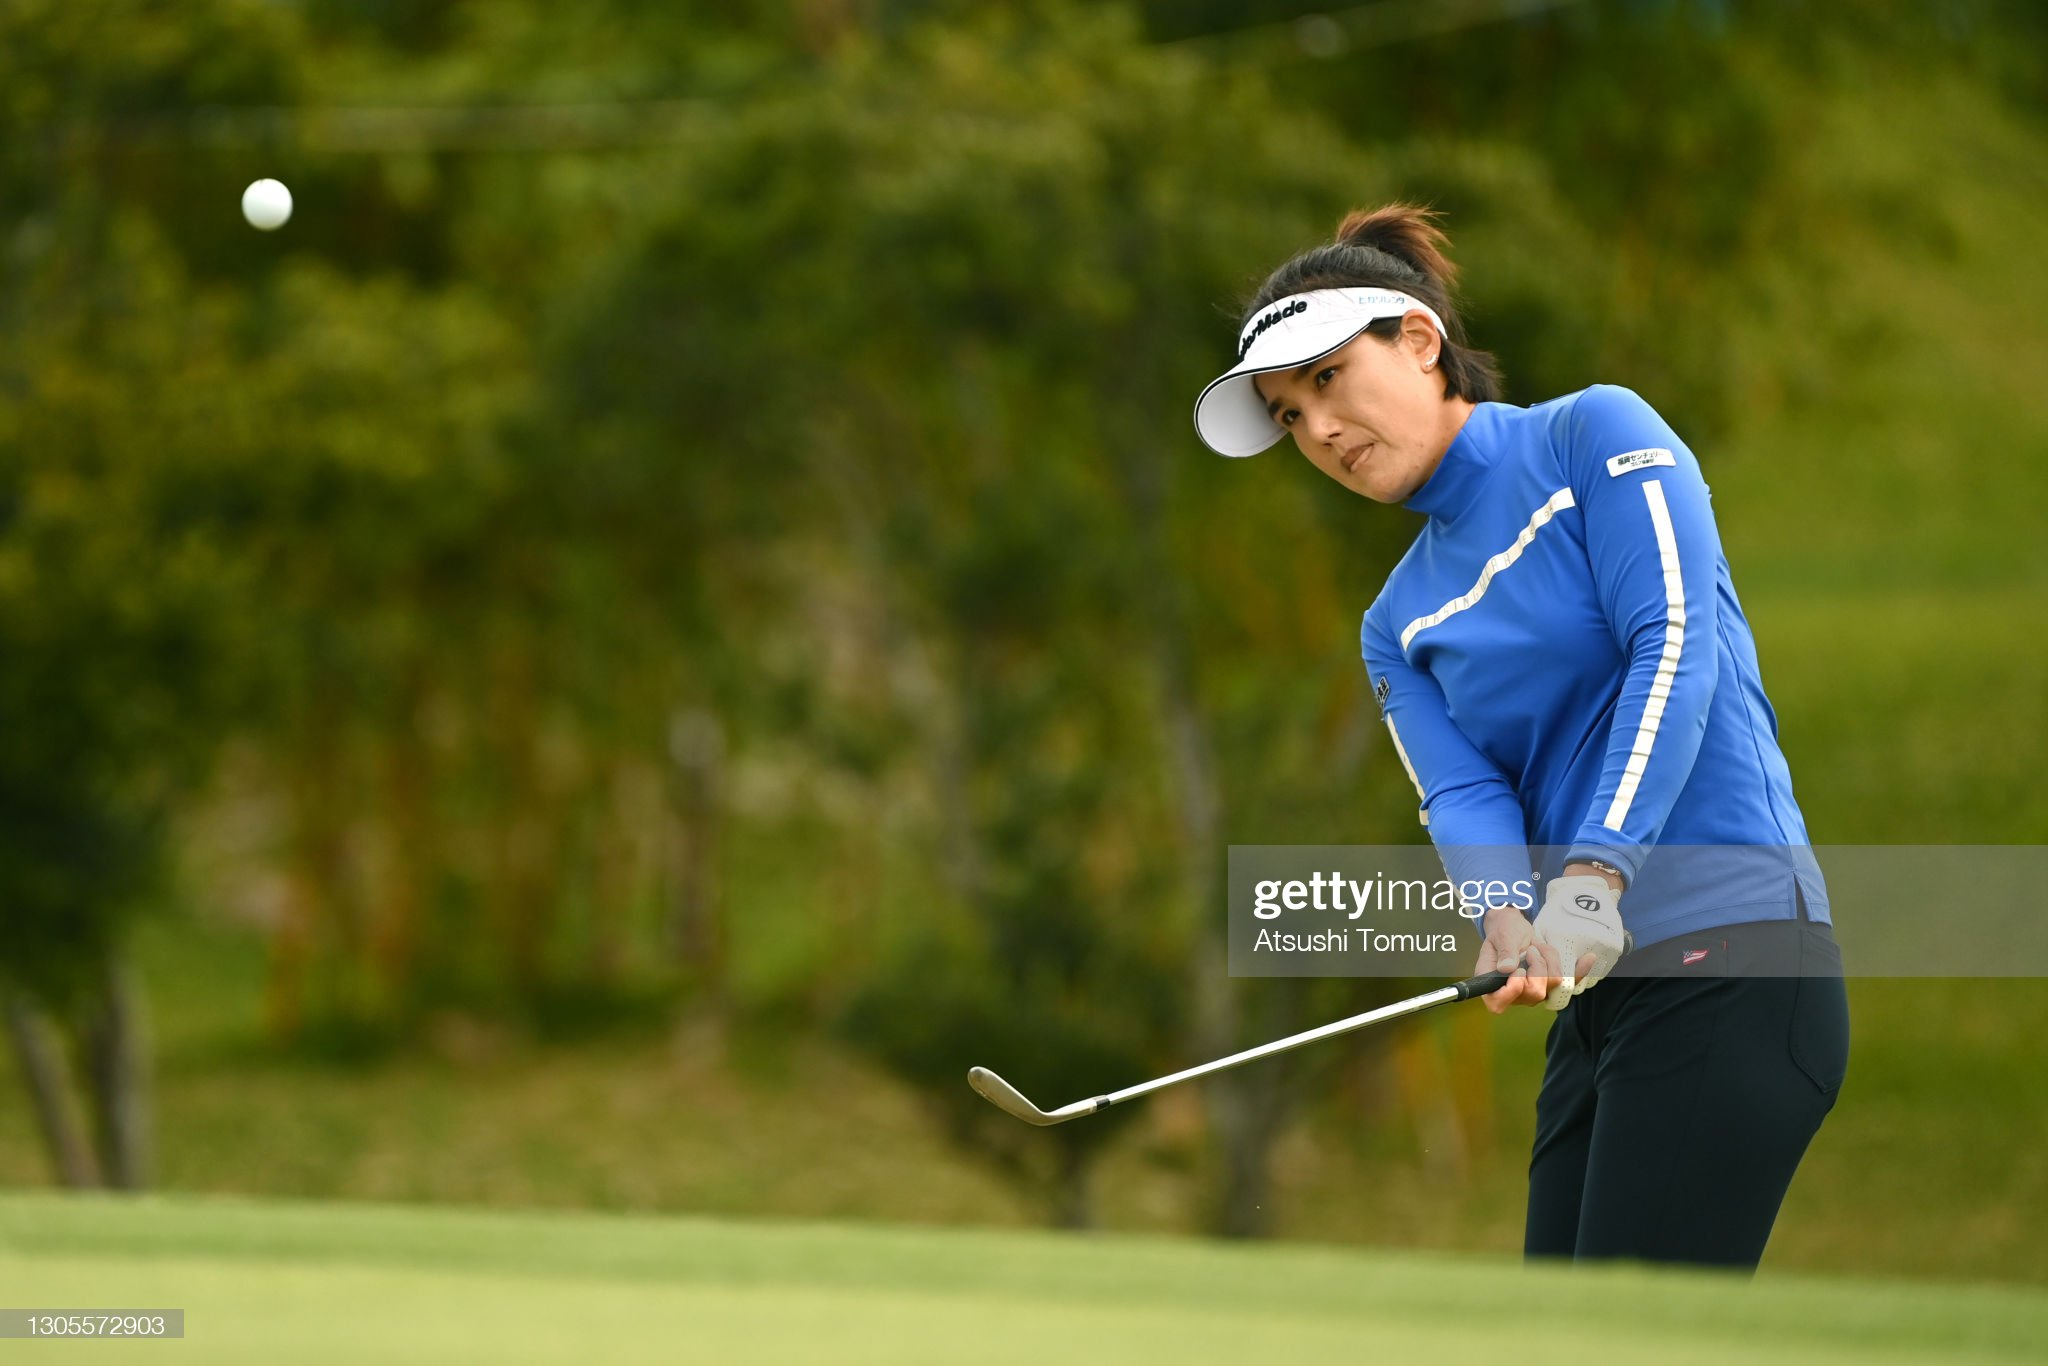 https://media.gettyimages.com/photos/mijeong-jeon-of-south-korea-chips-onto-the-5th-green-during-the-third-picture-id1305572903?s=2048x2048